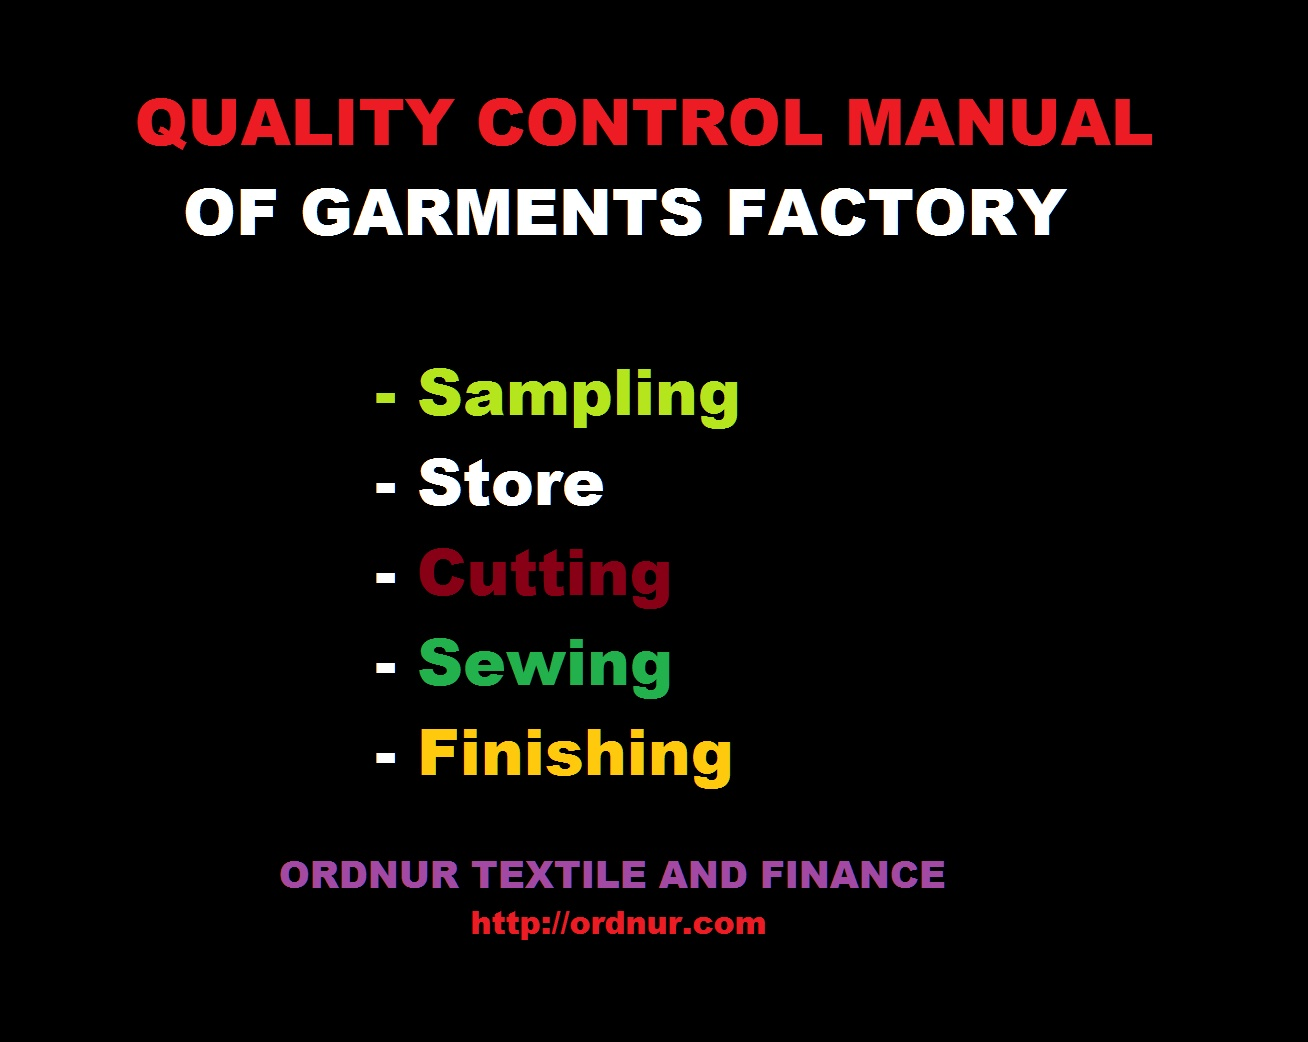 Quality Control Manual of Garments Factory and Its Working